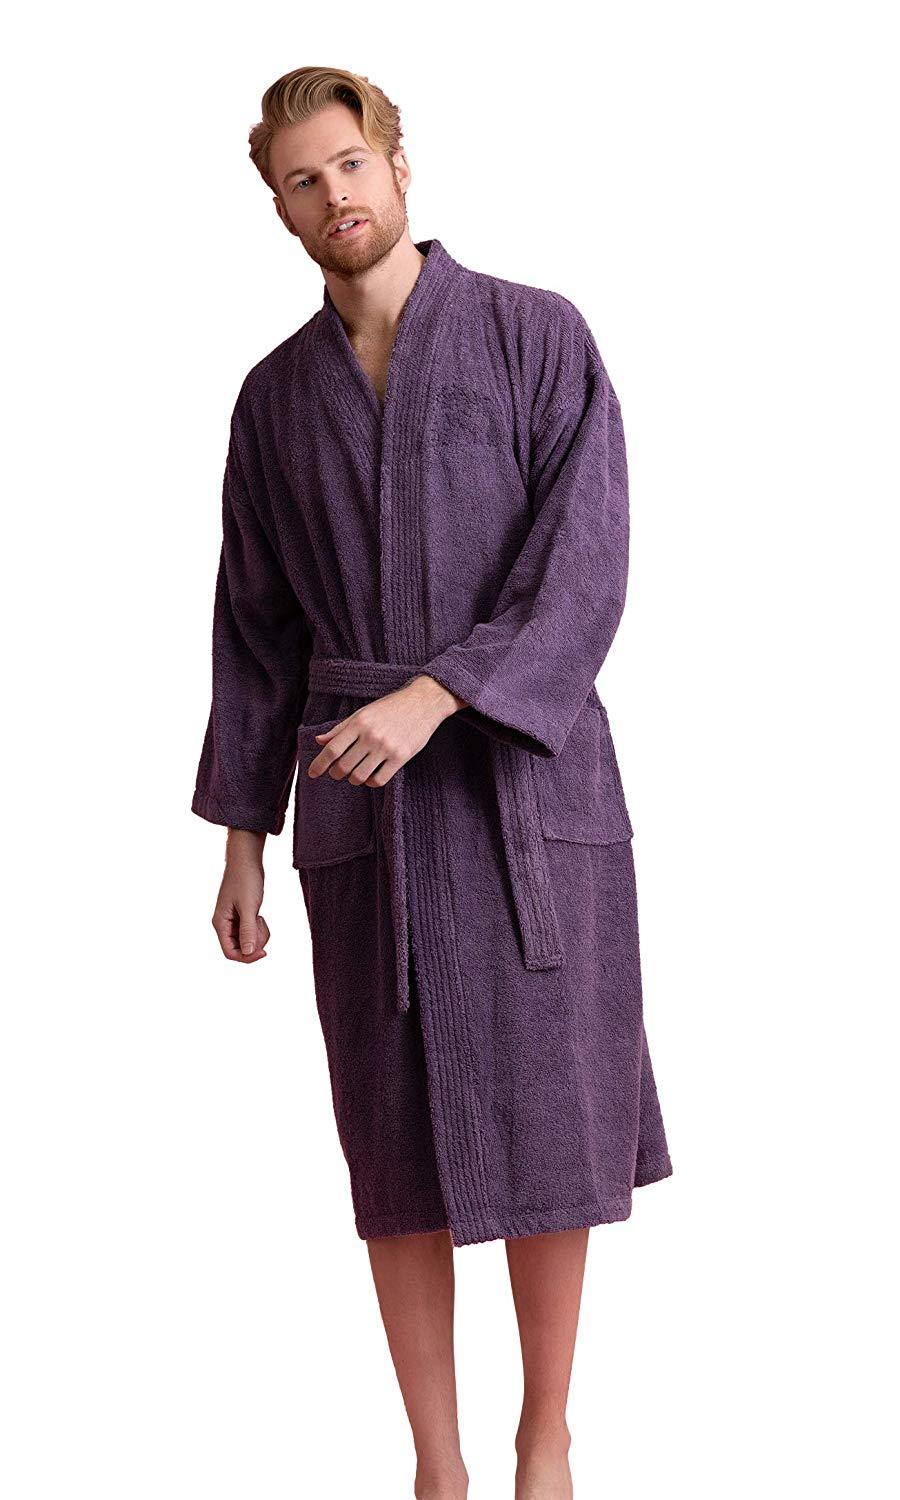 Royal Blue Burgundy White Piping Mens Silk Satin Robe Sleepwear Robes Clothing Shoes Accessories